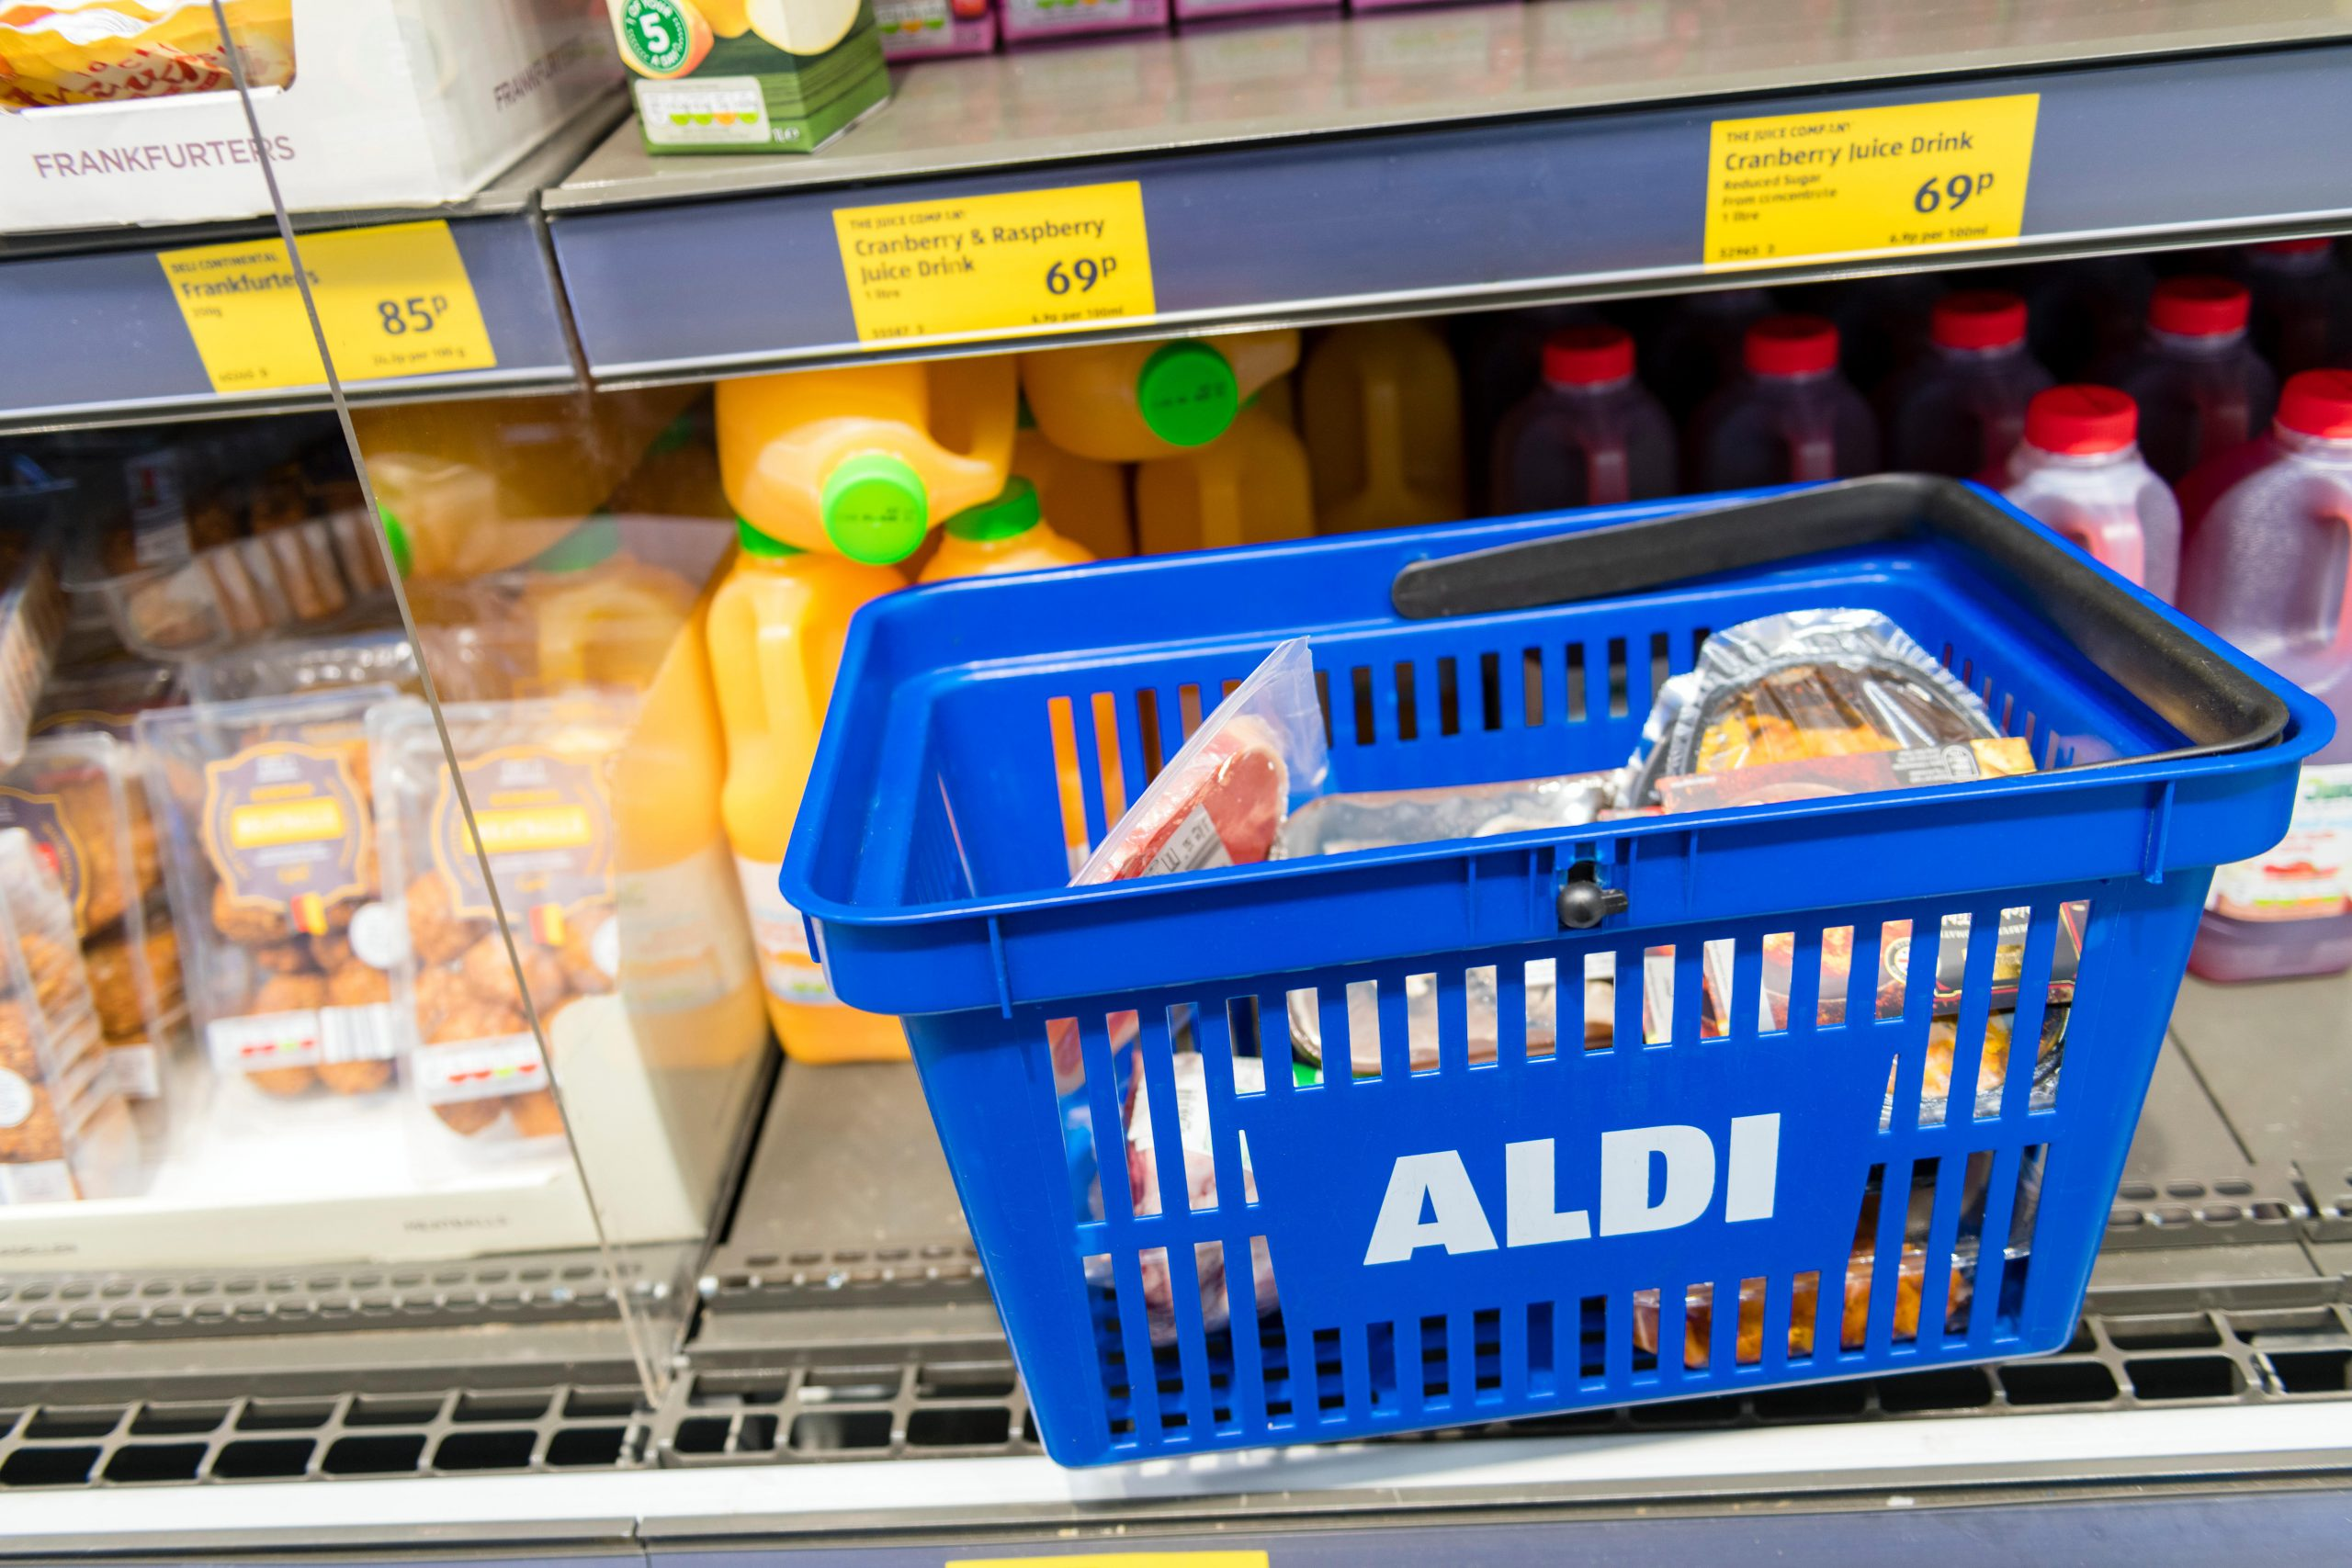 Mum feeds family of four for £25 a week - here's her Aldi shopping list